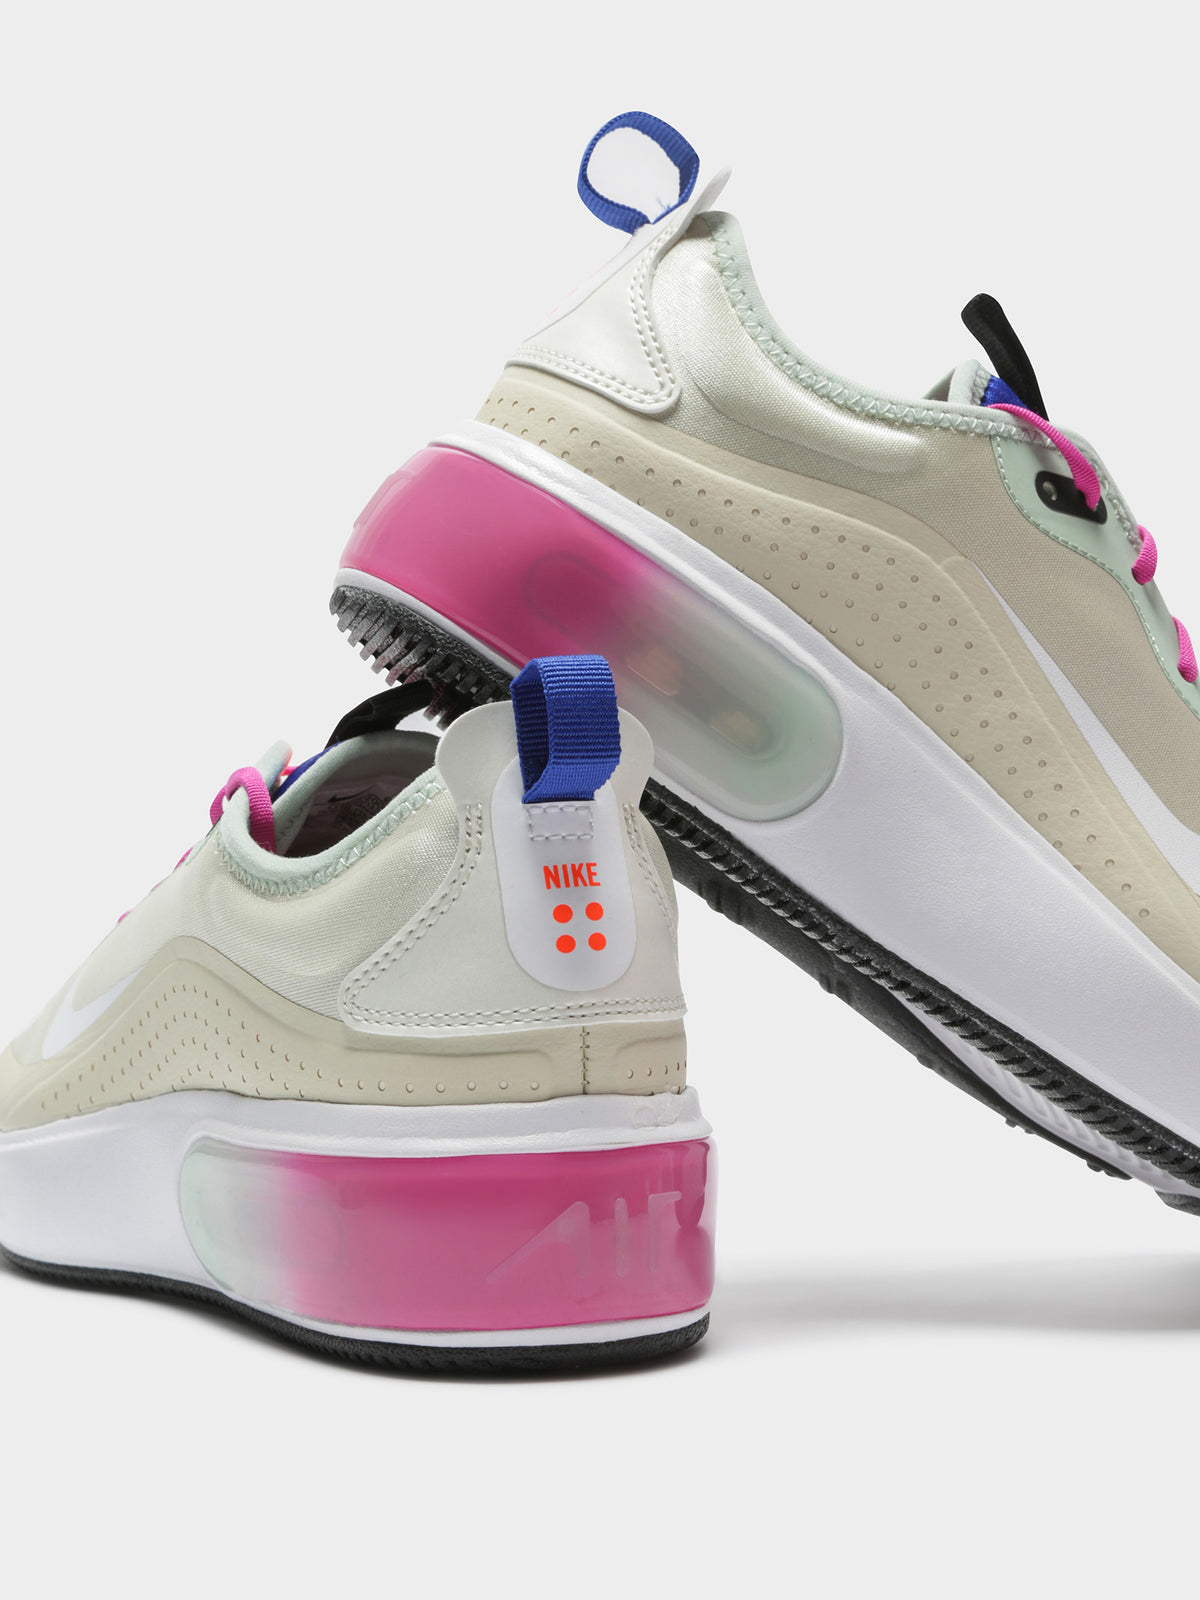 Womens Air Max Dia Sneakers in Fossil Pink & Green